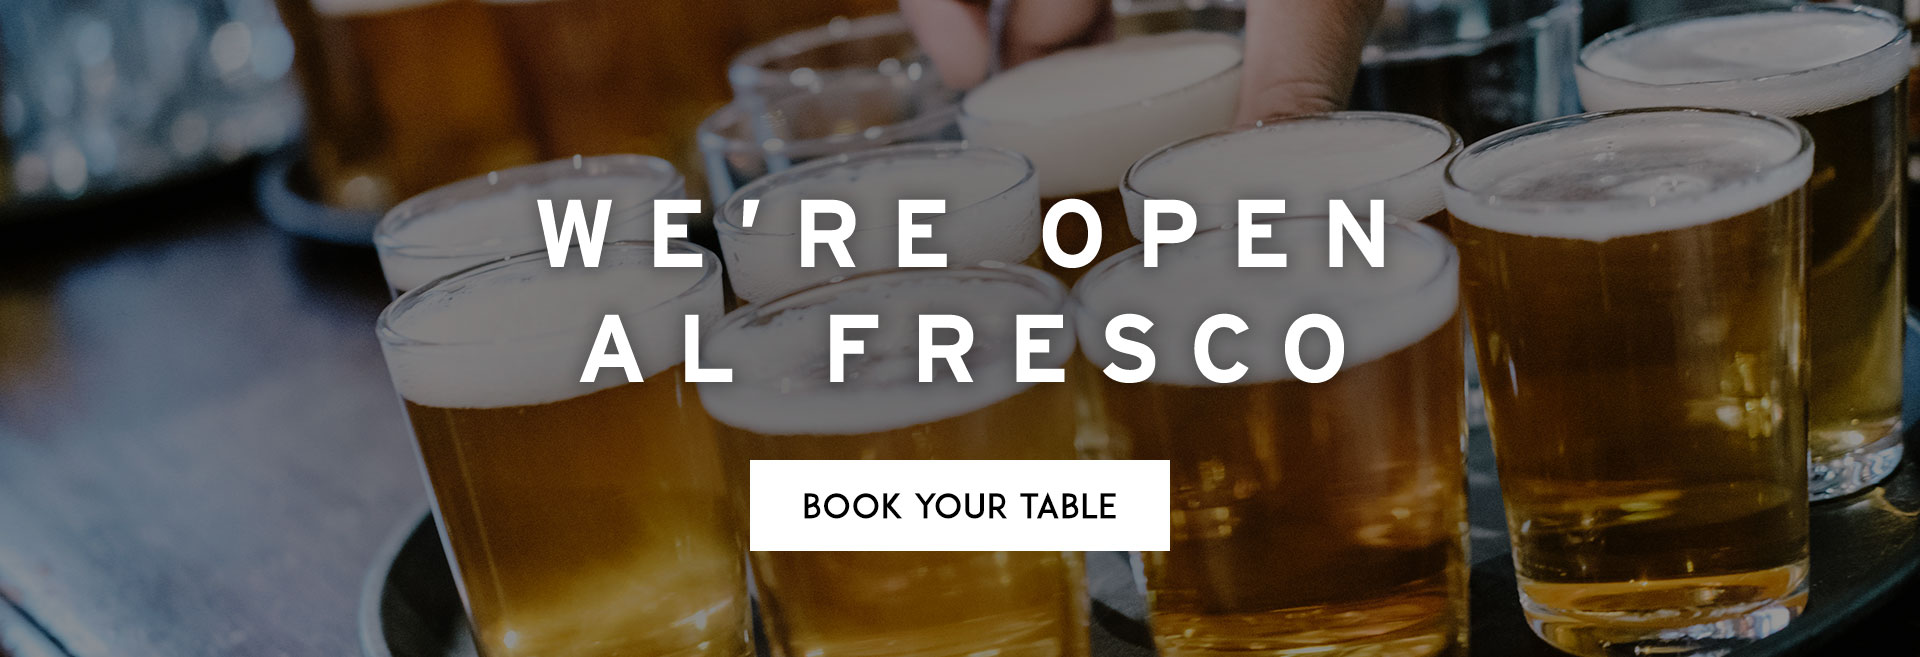 Book Your Table The King Harry